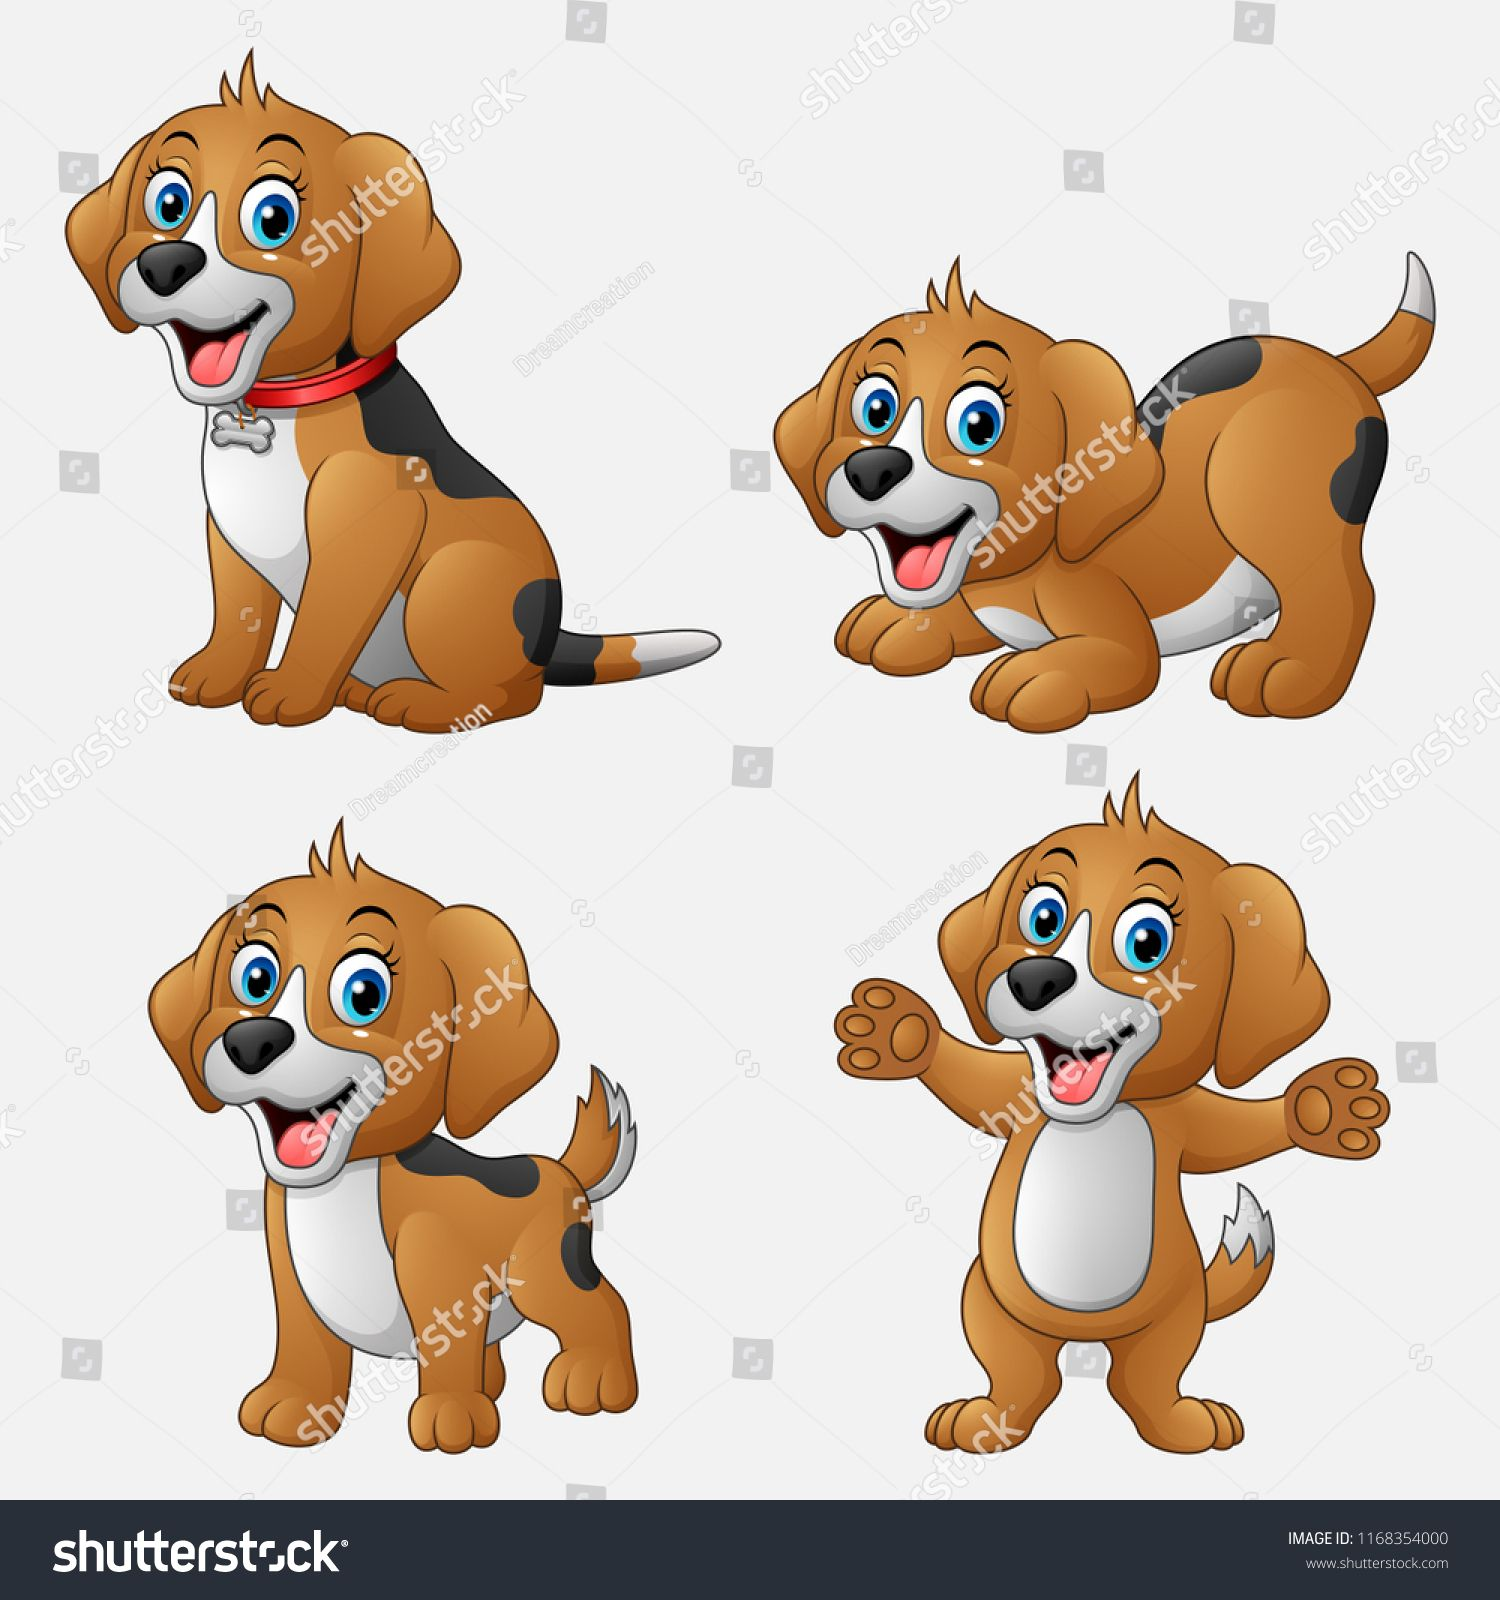 Cartoon Funny Dogs Collection Set Ad Sponsored Funny Cartoon Dogs Set Baby Animal Drawings Cartoon Character Design Cute Animal Drawings